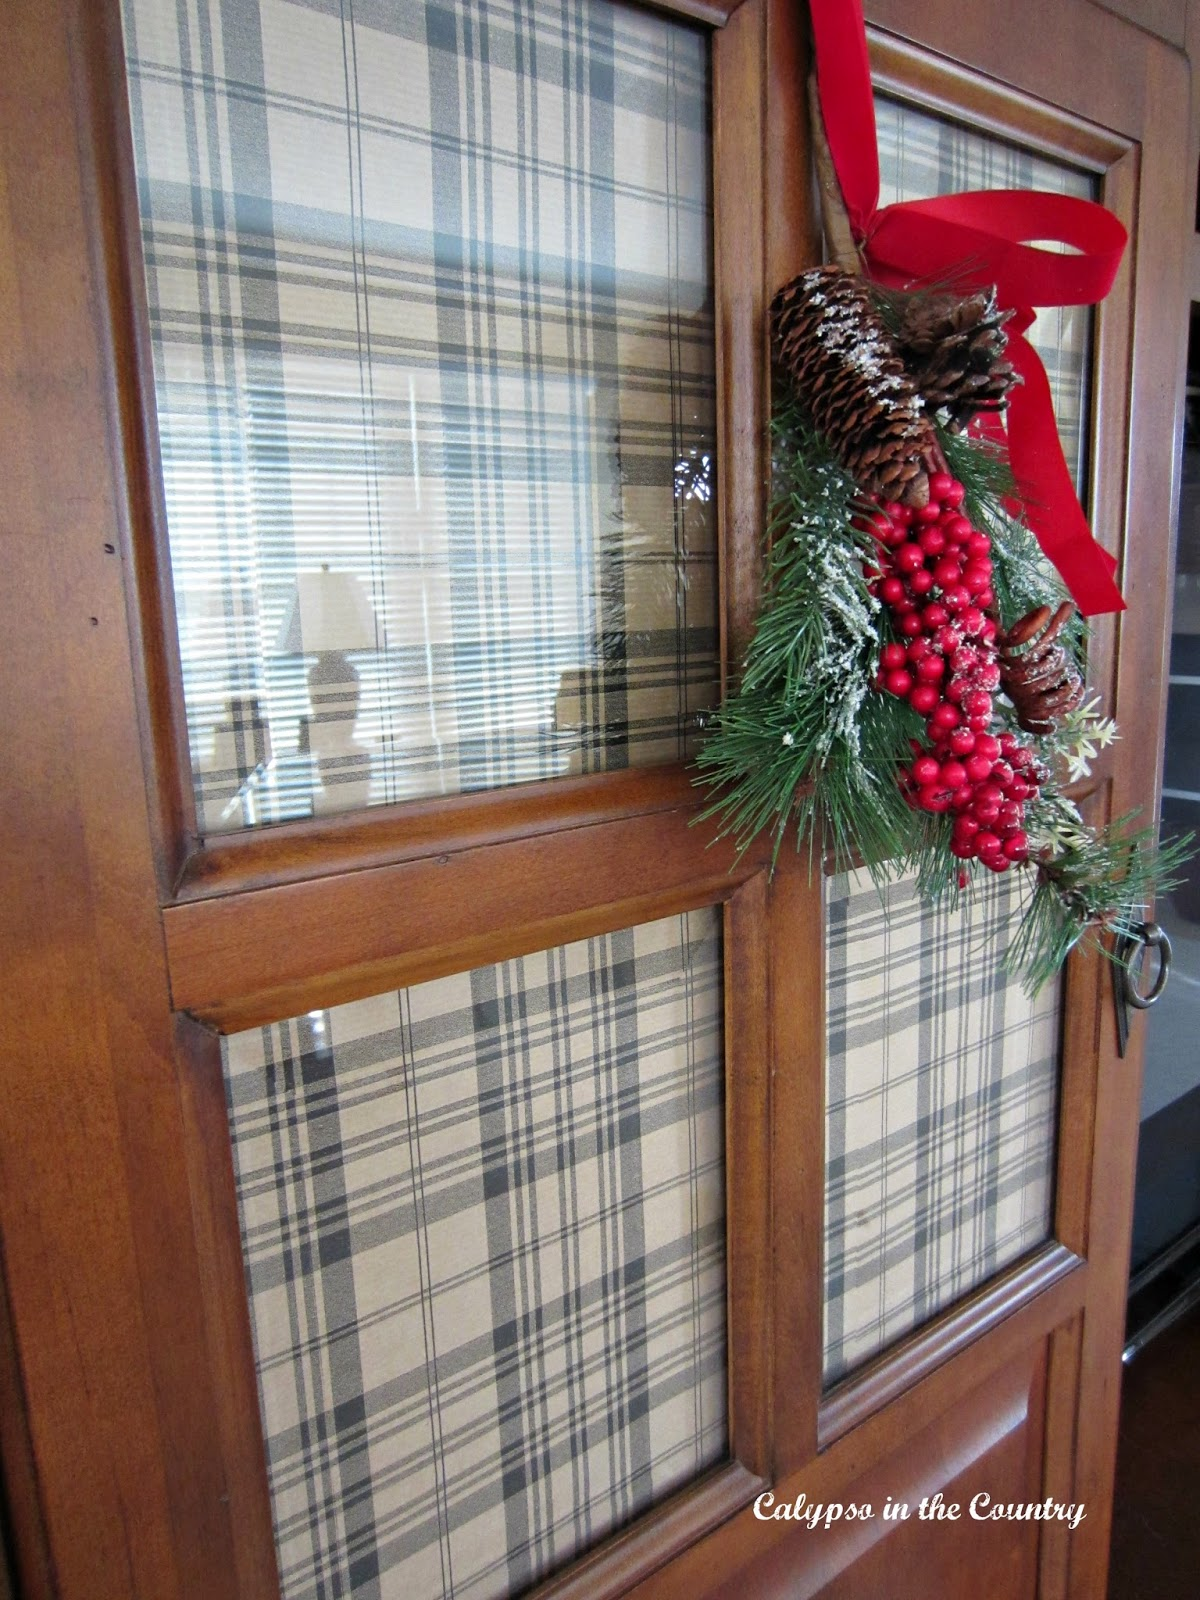 Plaid Wrapping Paper - a quick solution to hide clutter